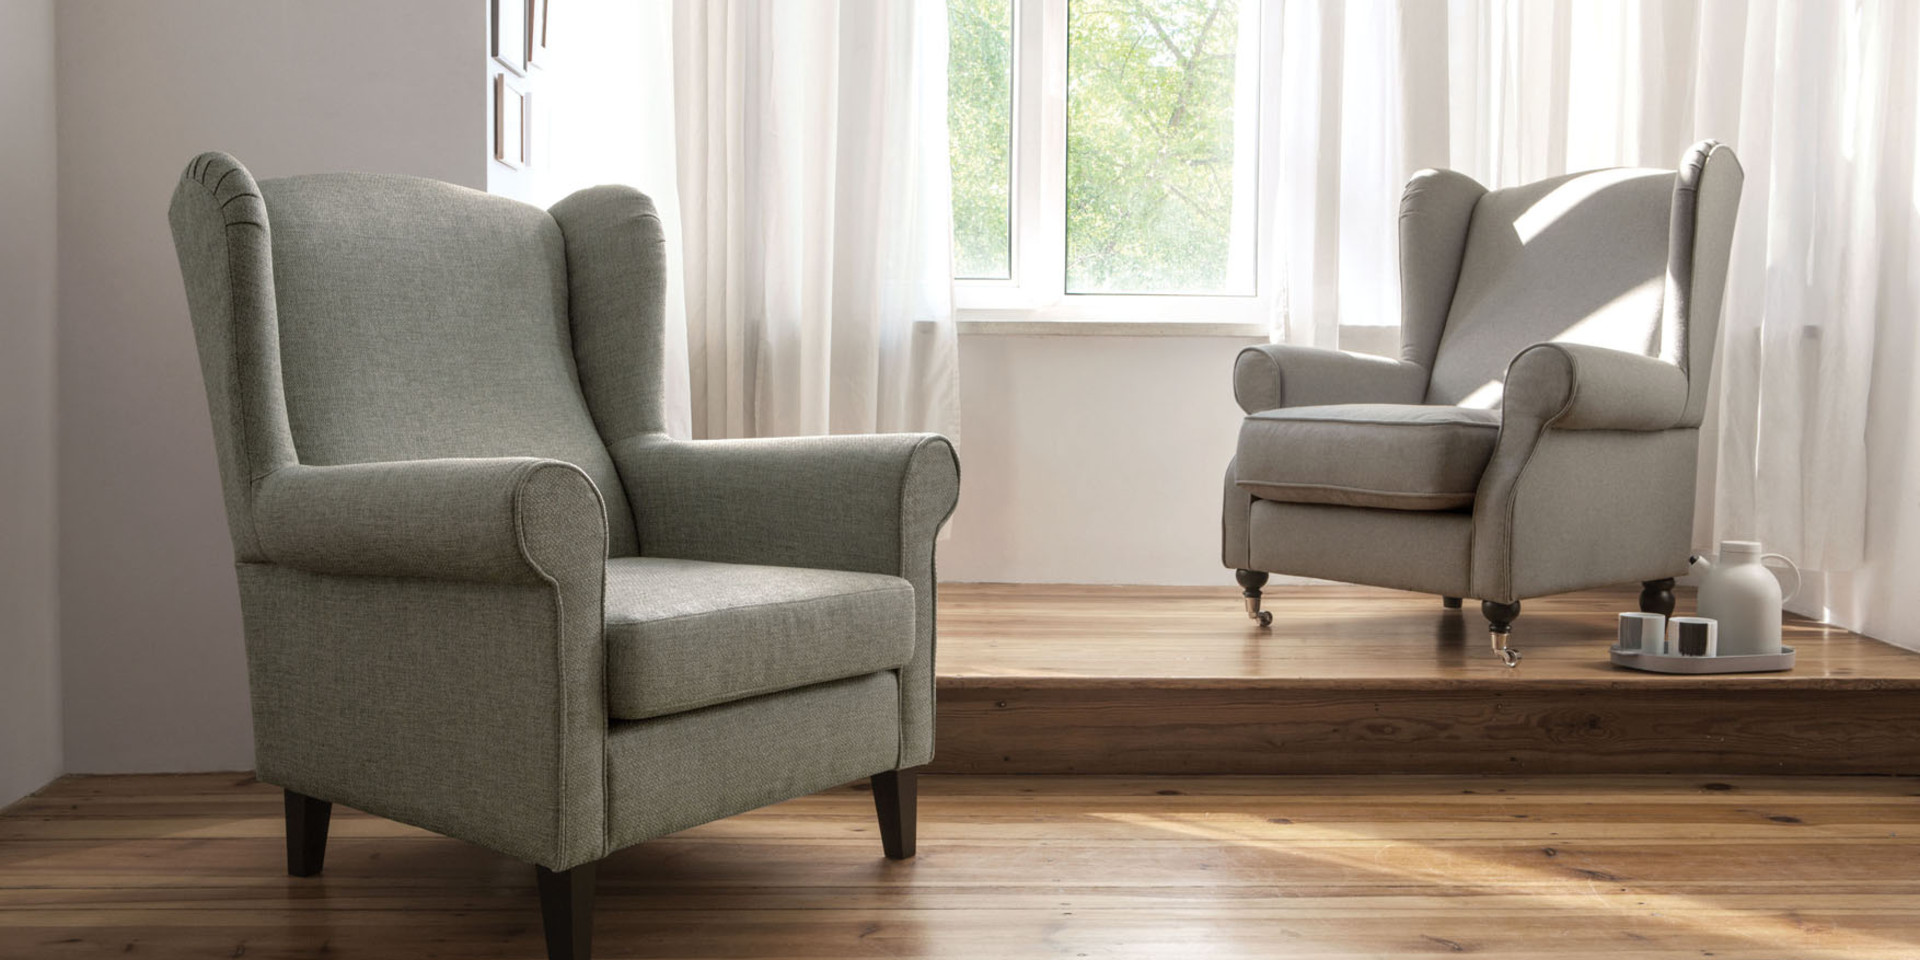 sits-watson-ambiance-armchair_high_panno1000_light_grey_watson_armchair_himalaya7_green_5